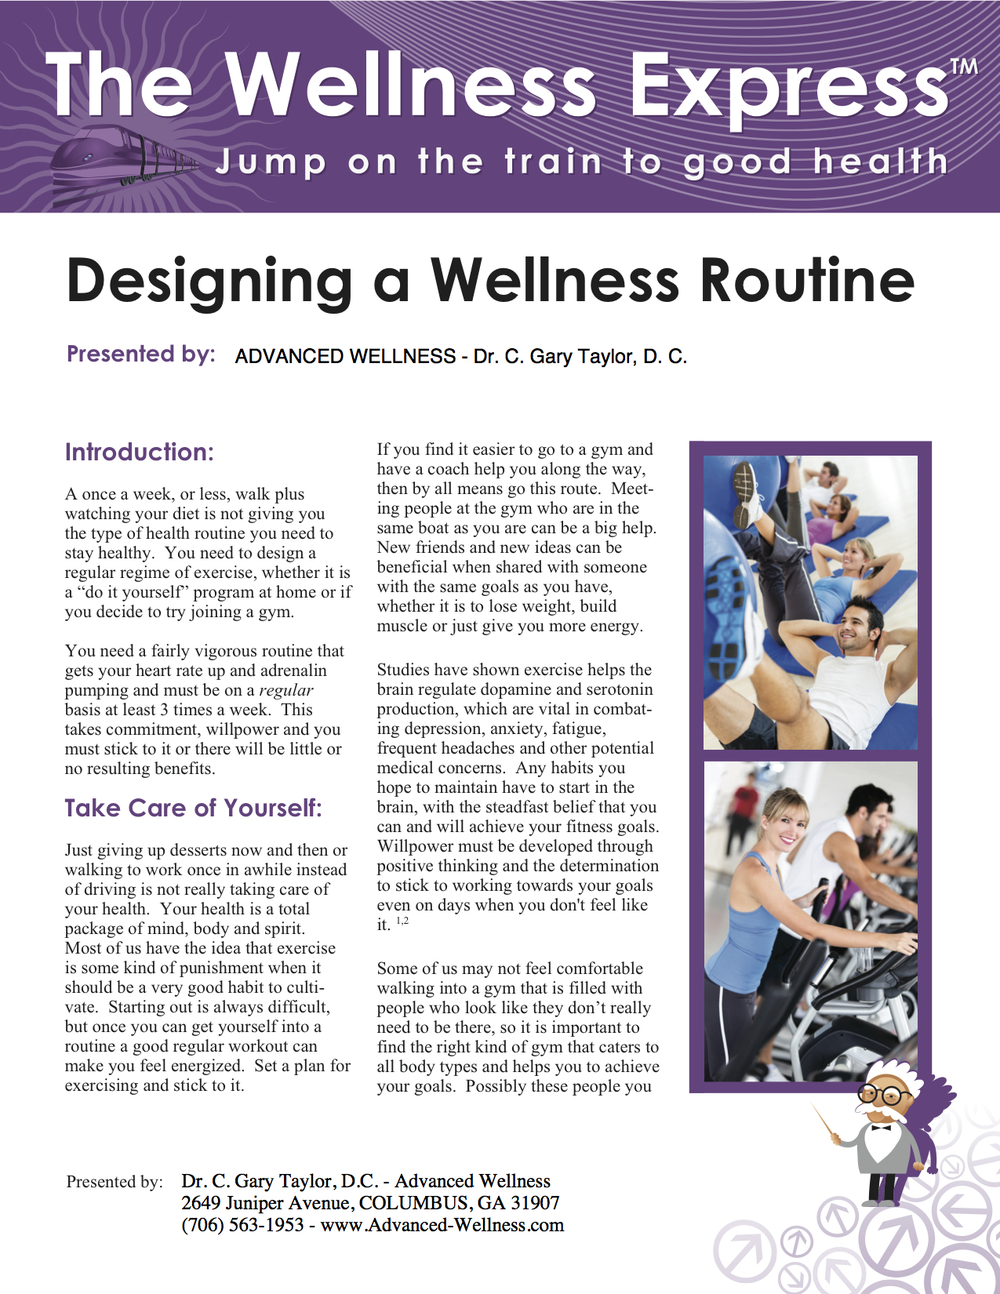 Weekly Newsletter: Designing a Wellness Routine